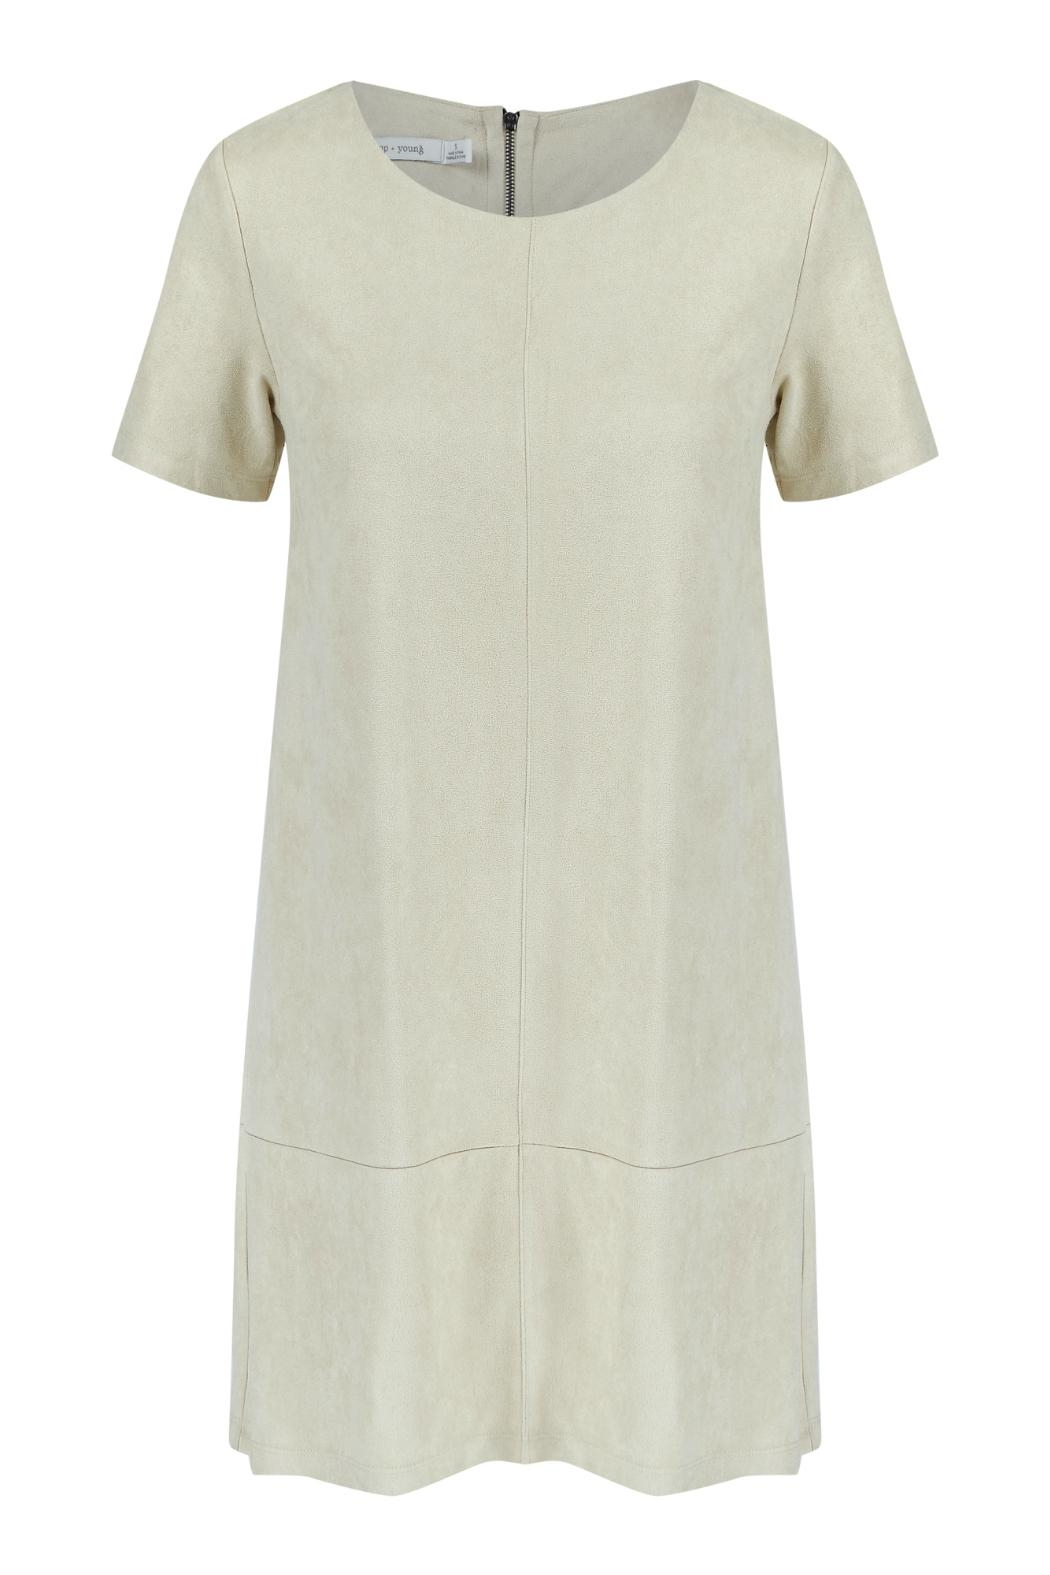 Bishop + Young Suede Shift Dress - Main Image